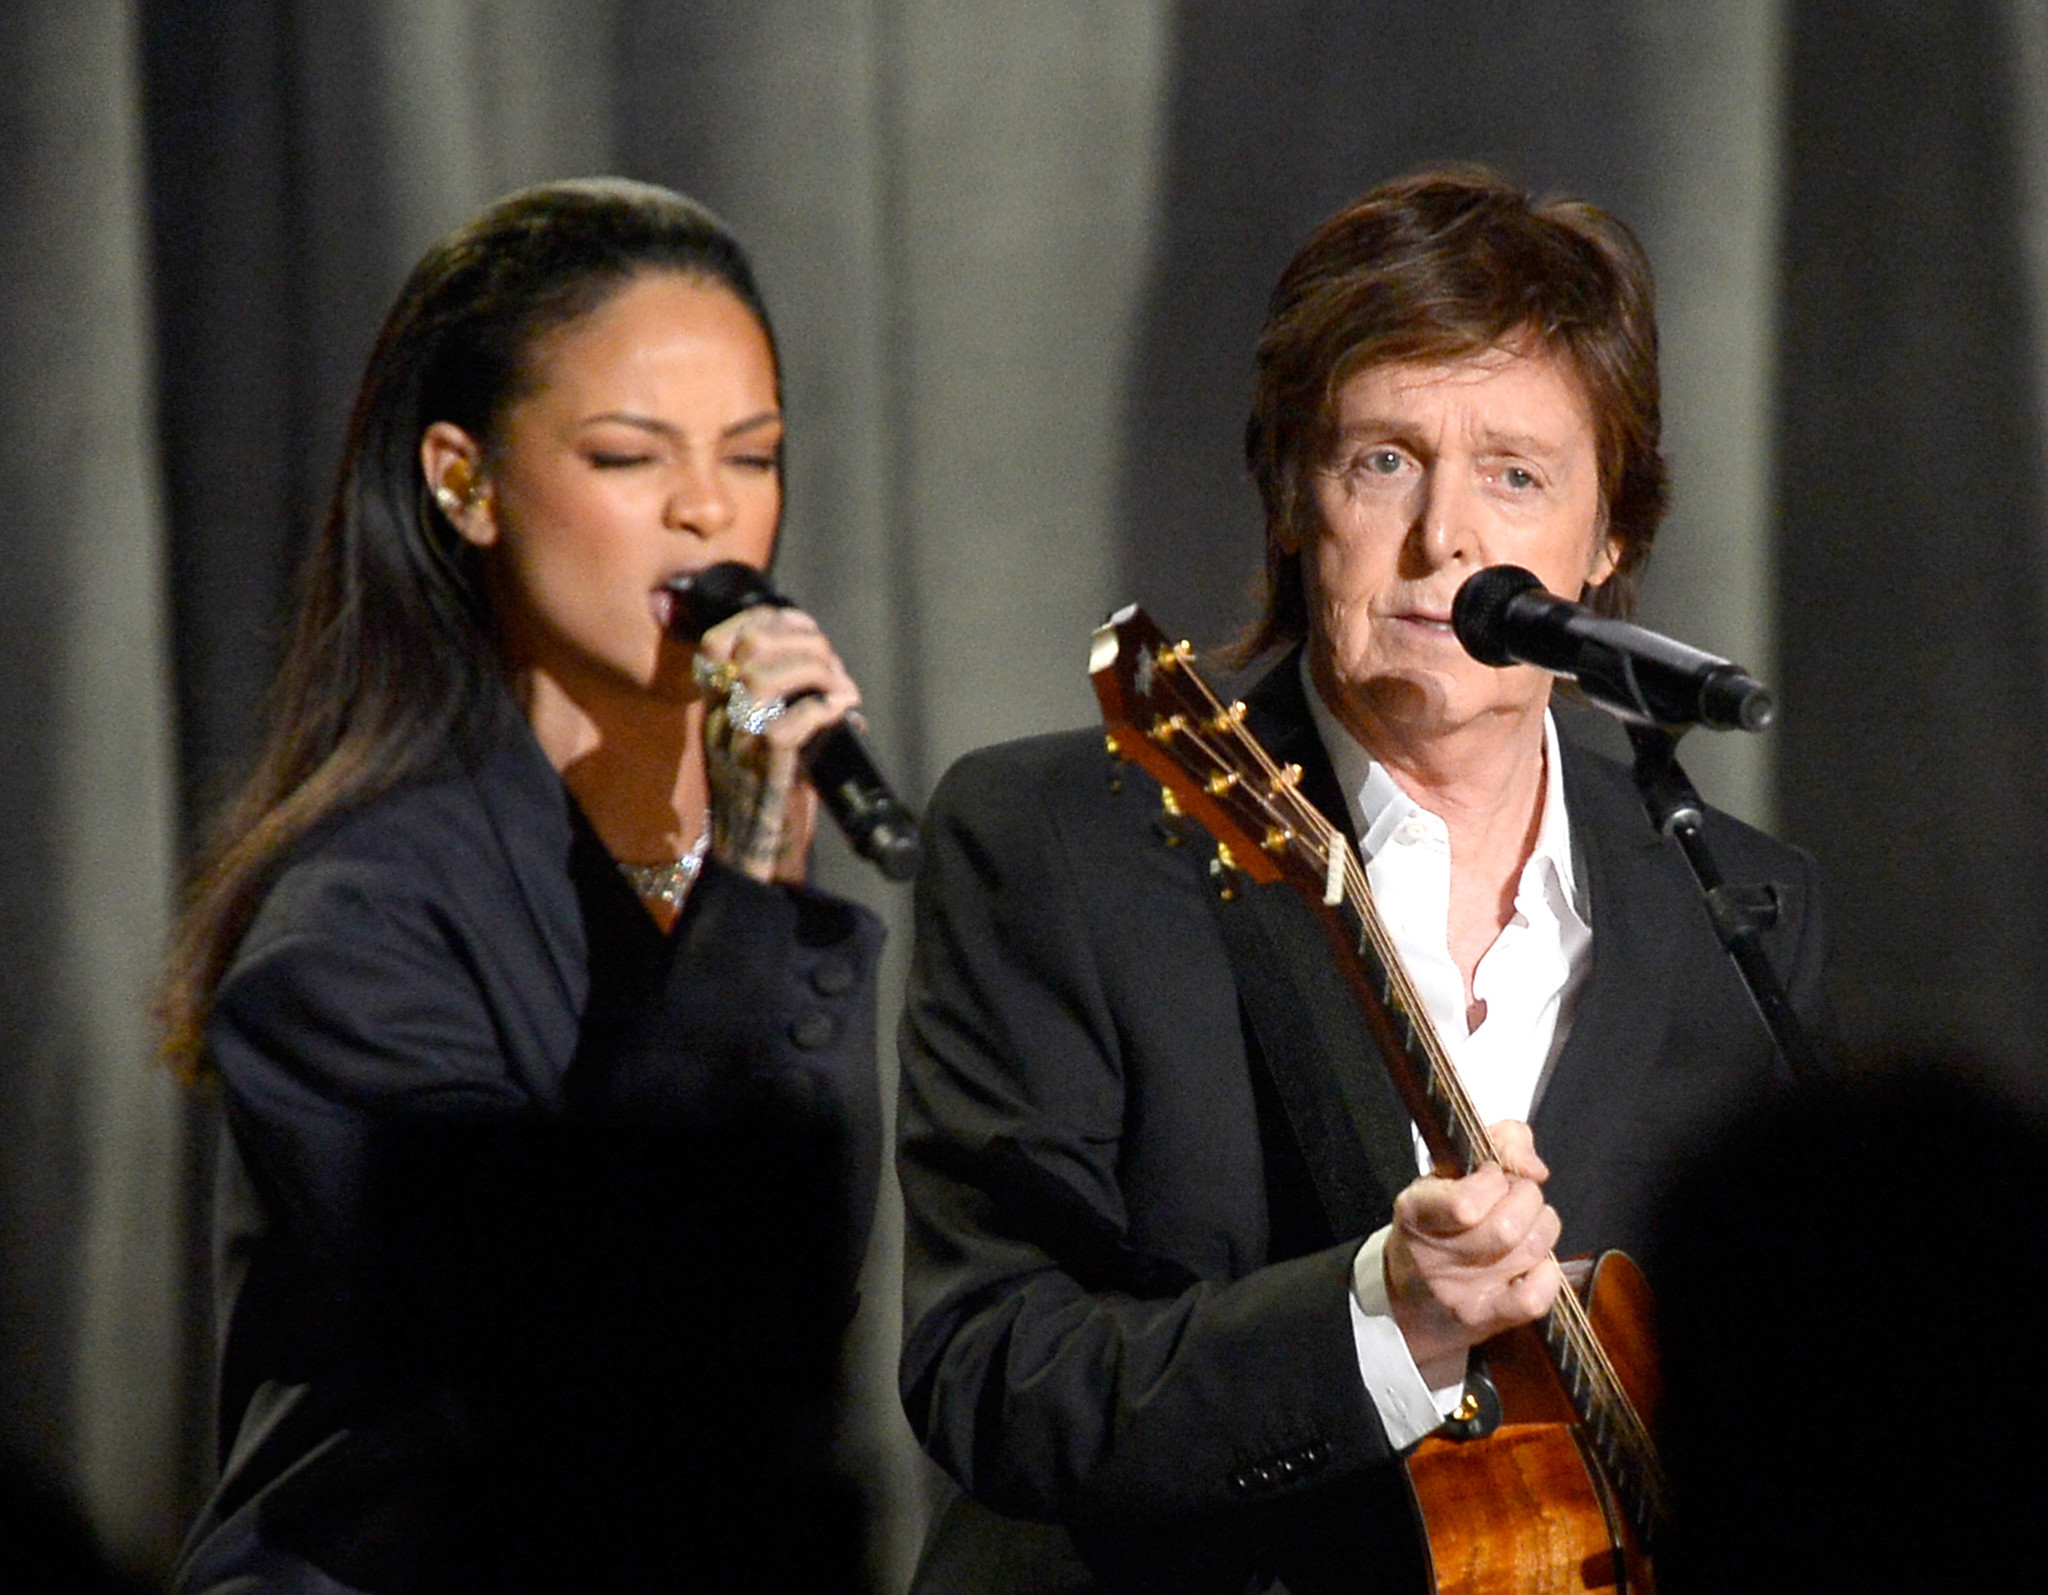 Rihanna runs into 'legend' Paul McCartney: 'Who is this peasant filming this legend?'